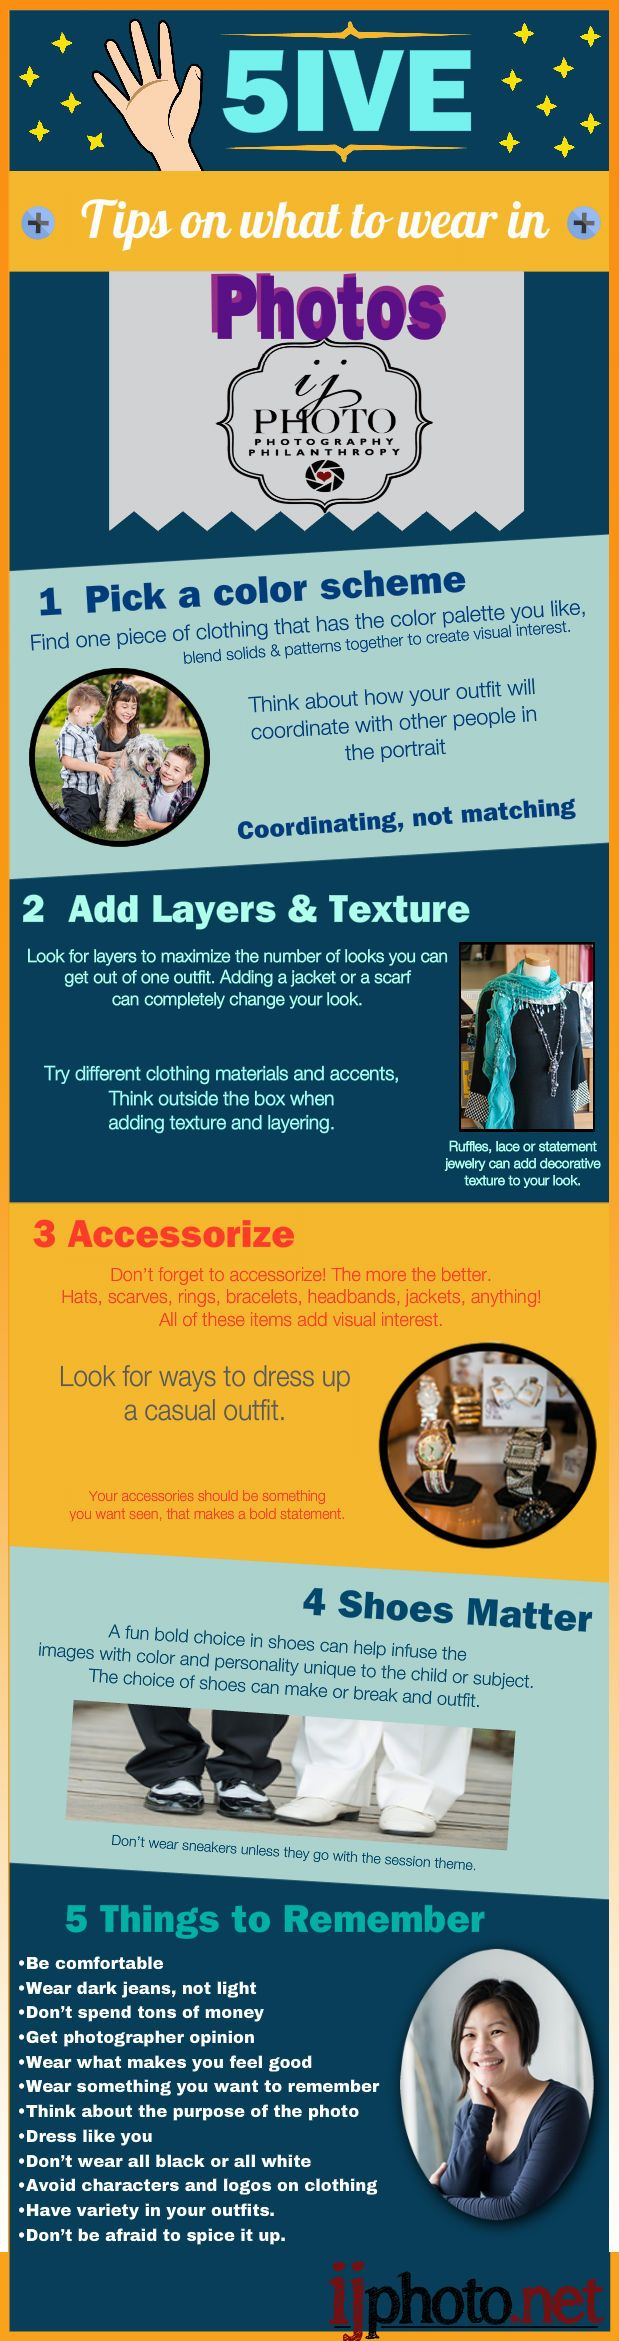 5 Tips On What To Wear In Infographic #Clothing